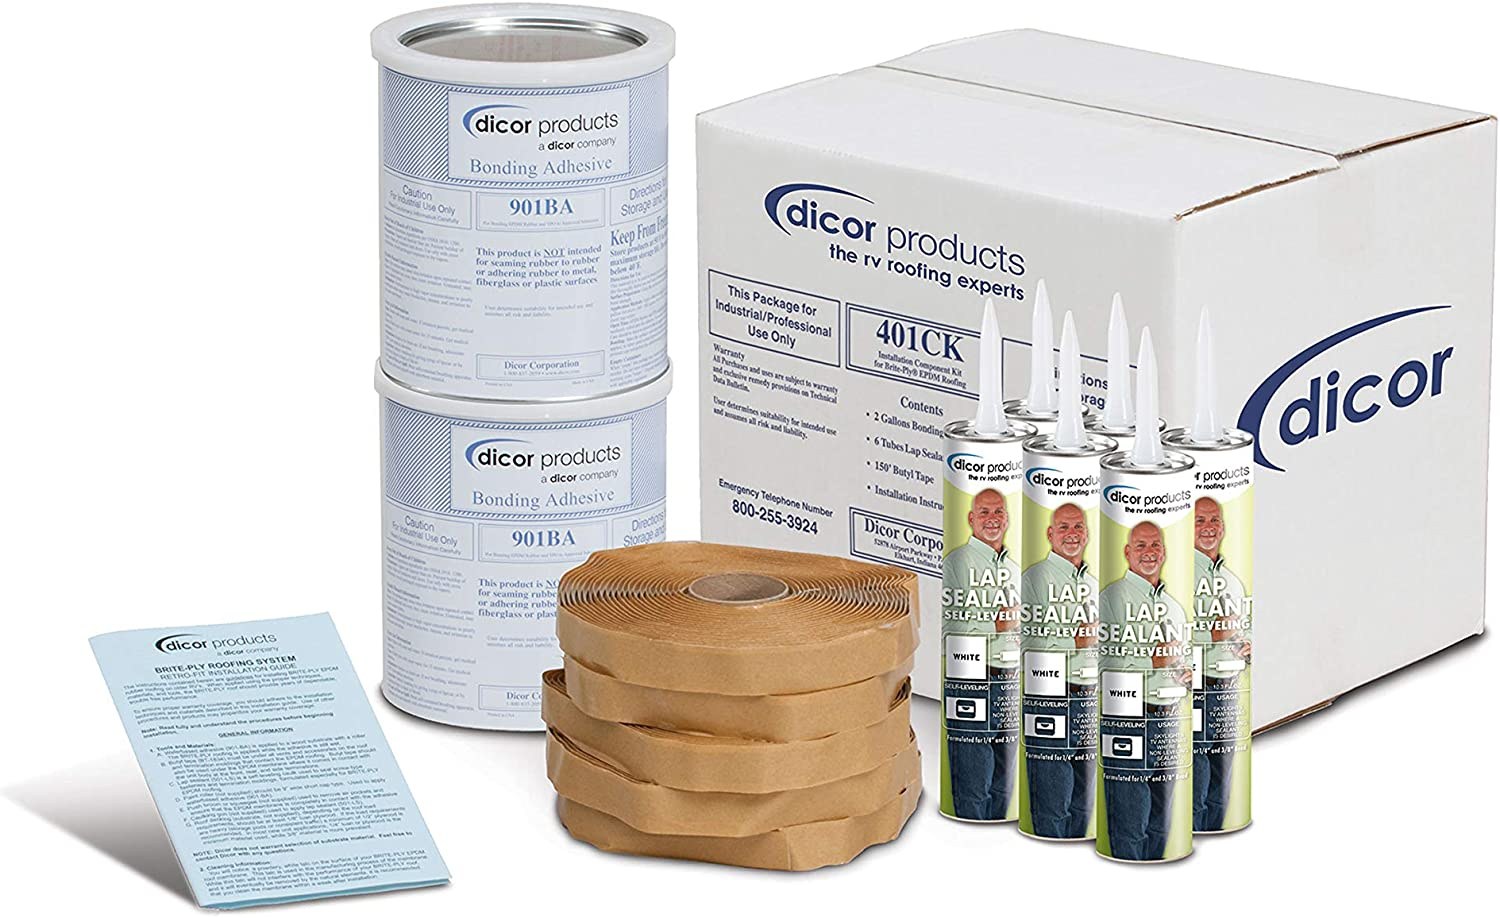 Dicor Mail order Max 47% OFF 401CK-G Rubber Kit Roof